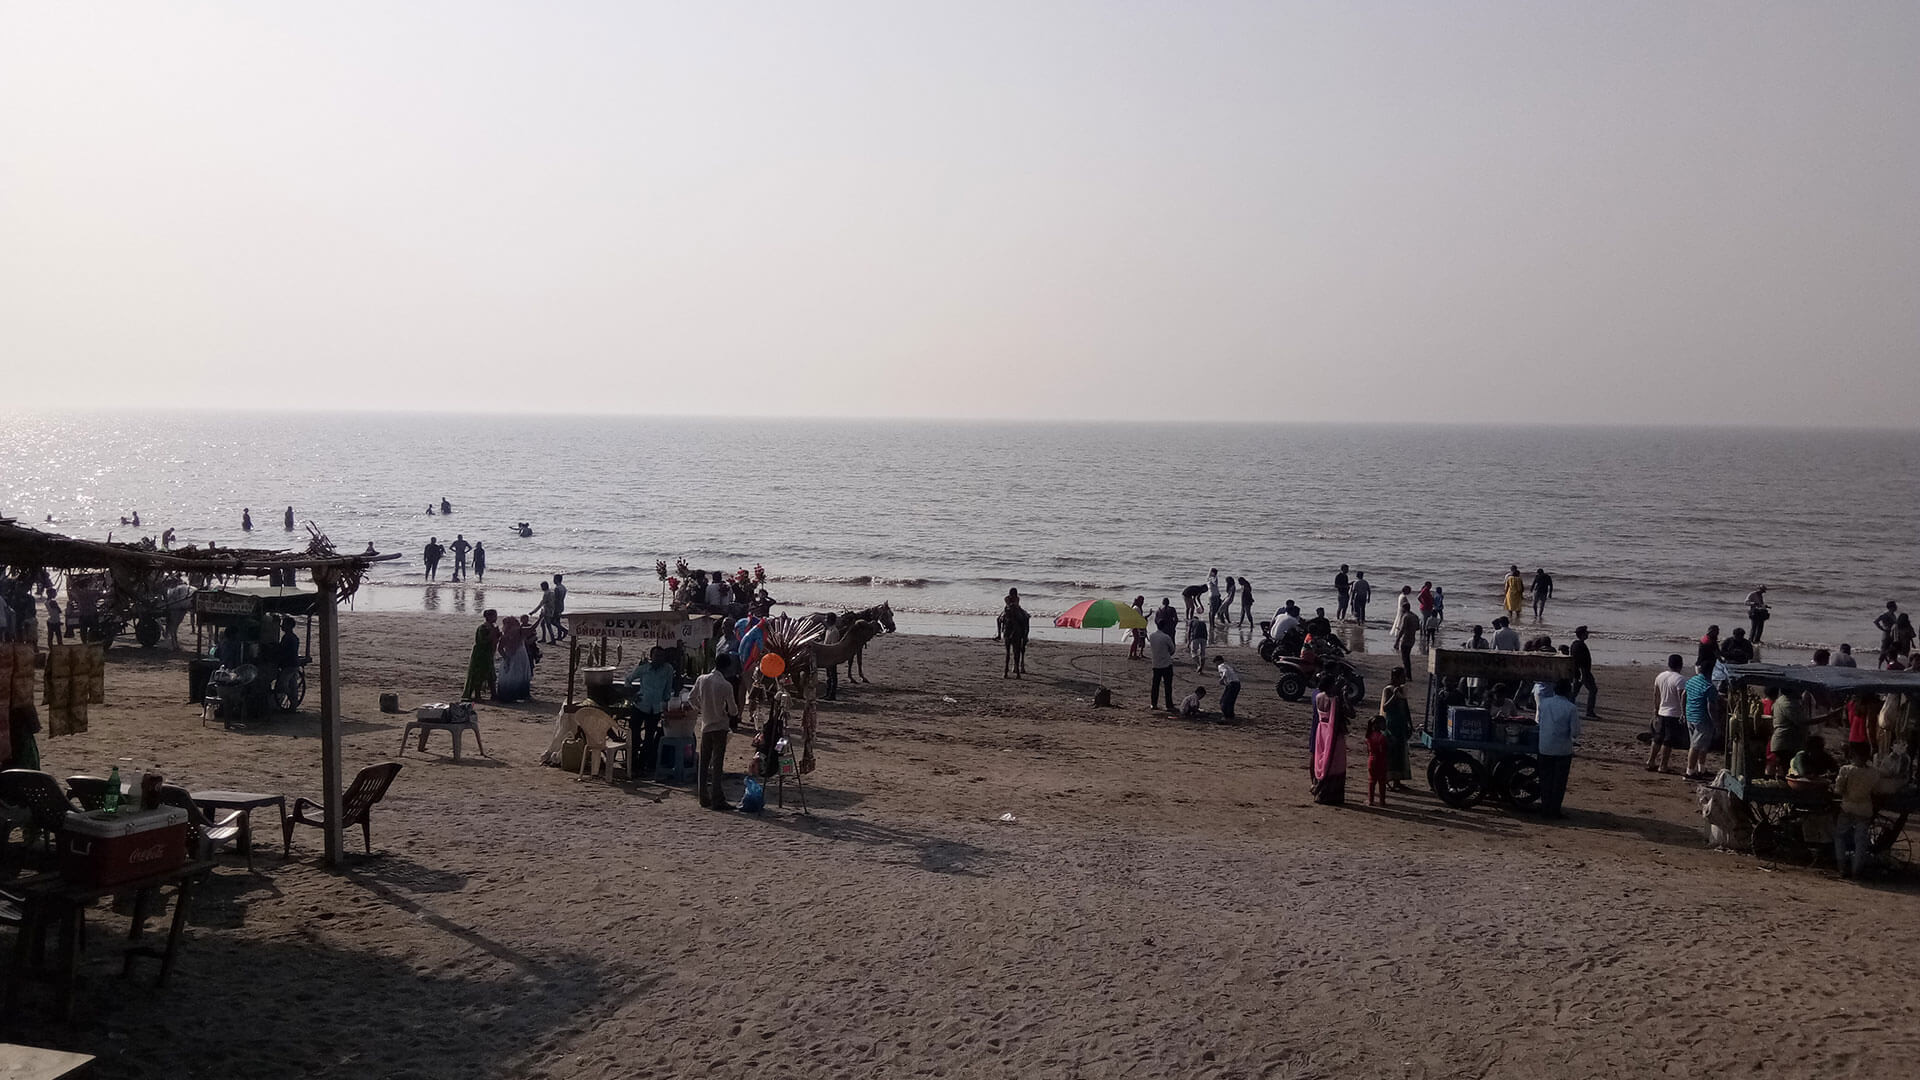 Visit Dumas Beach: The Black Sand Beach Near Surat, Gujarat